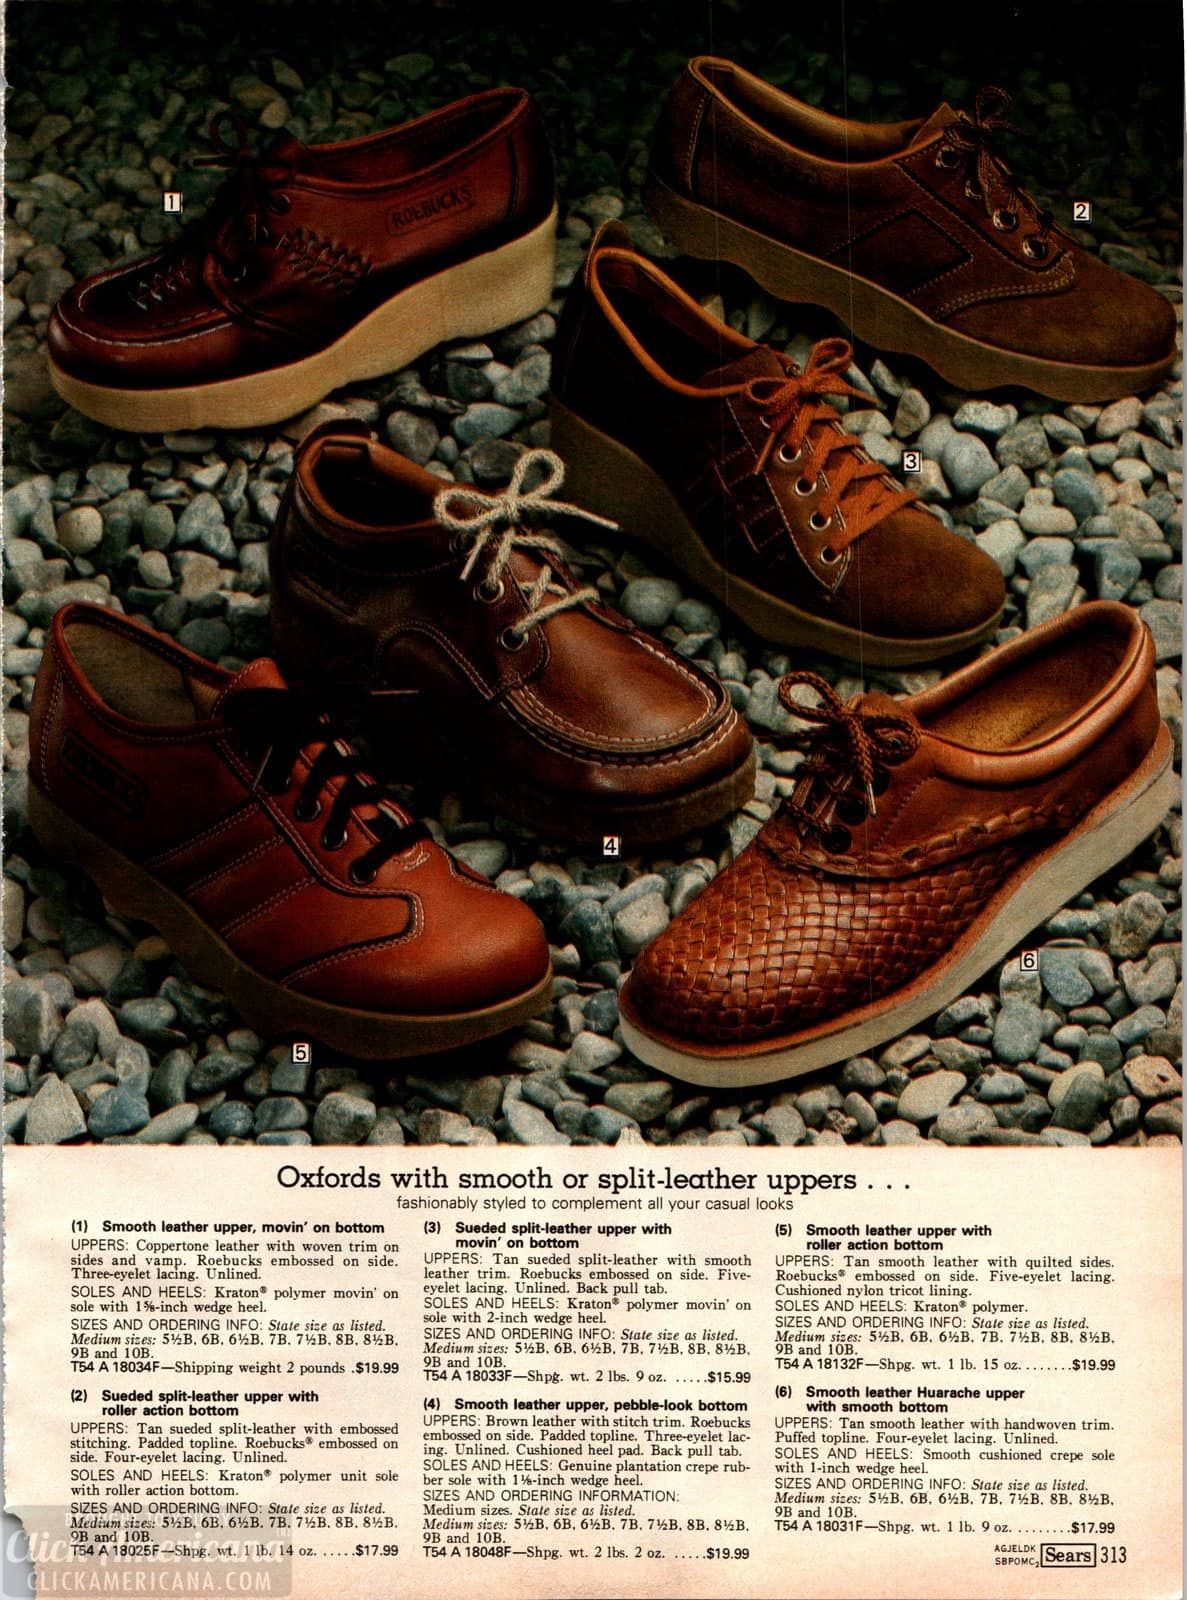 70s-style Oxfords with brown leather uppers and wavy platform soles